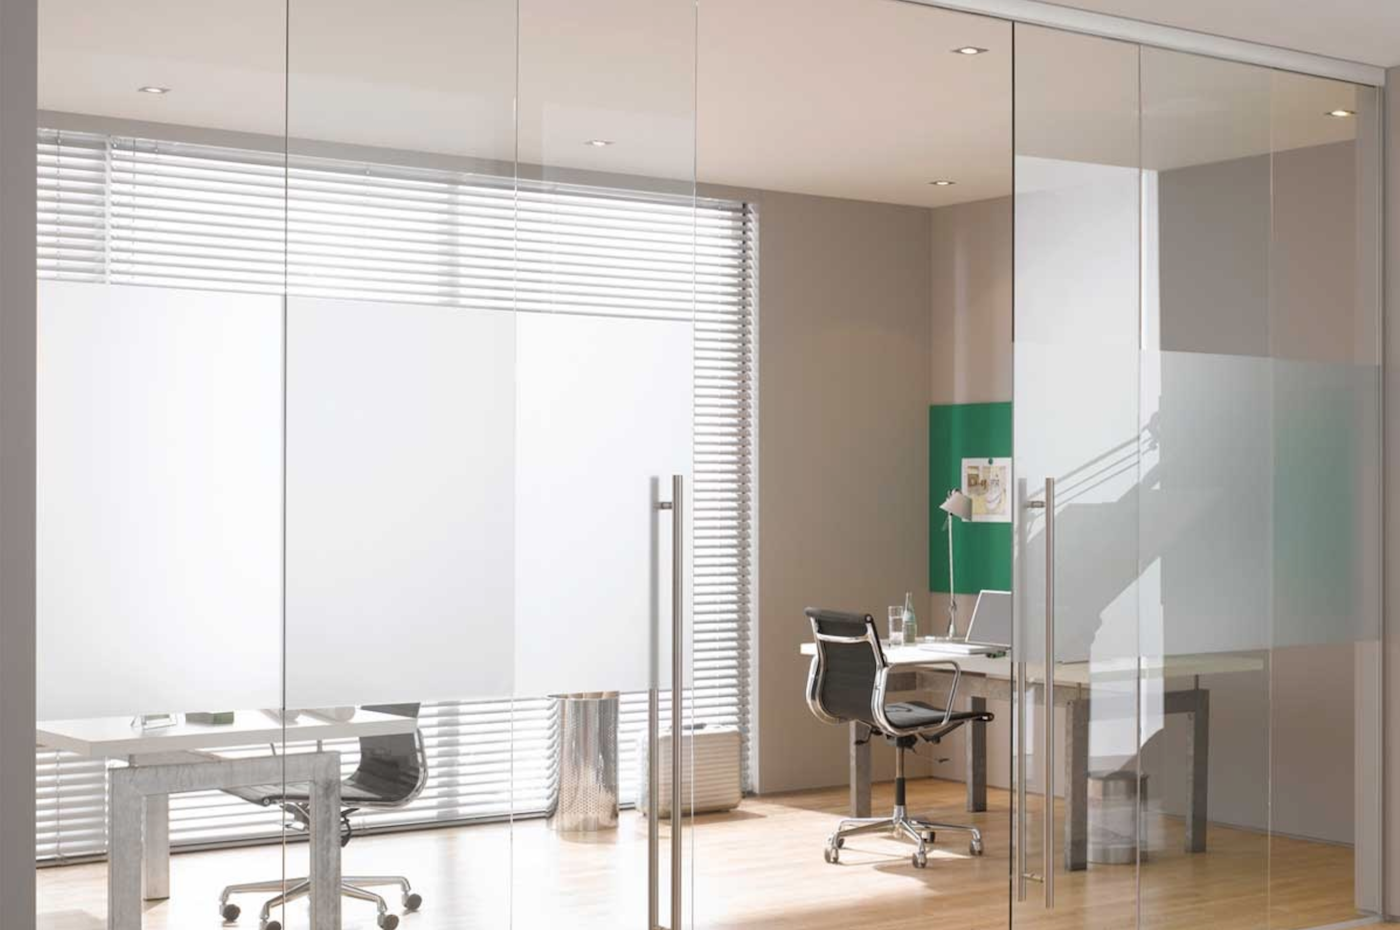 Assisted close sliding glass office doors close smoothly